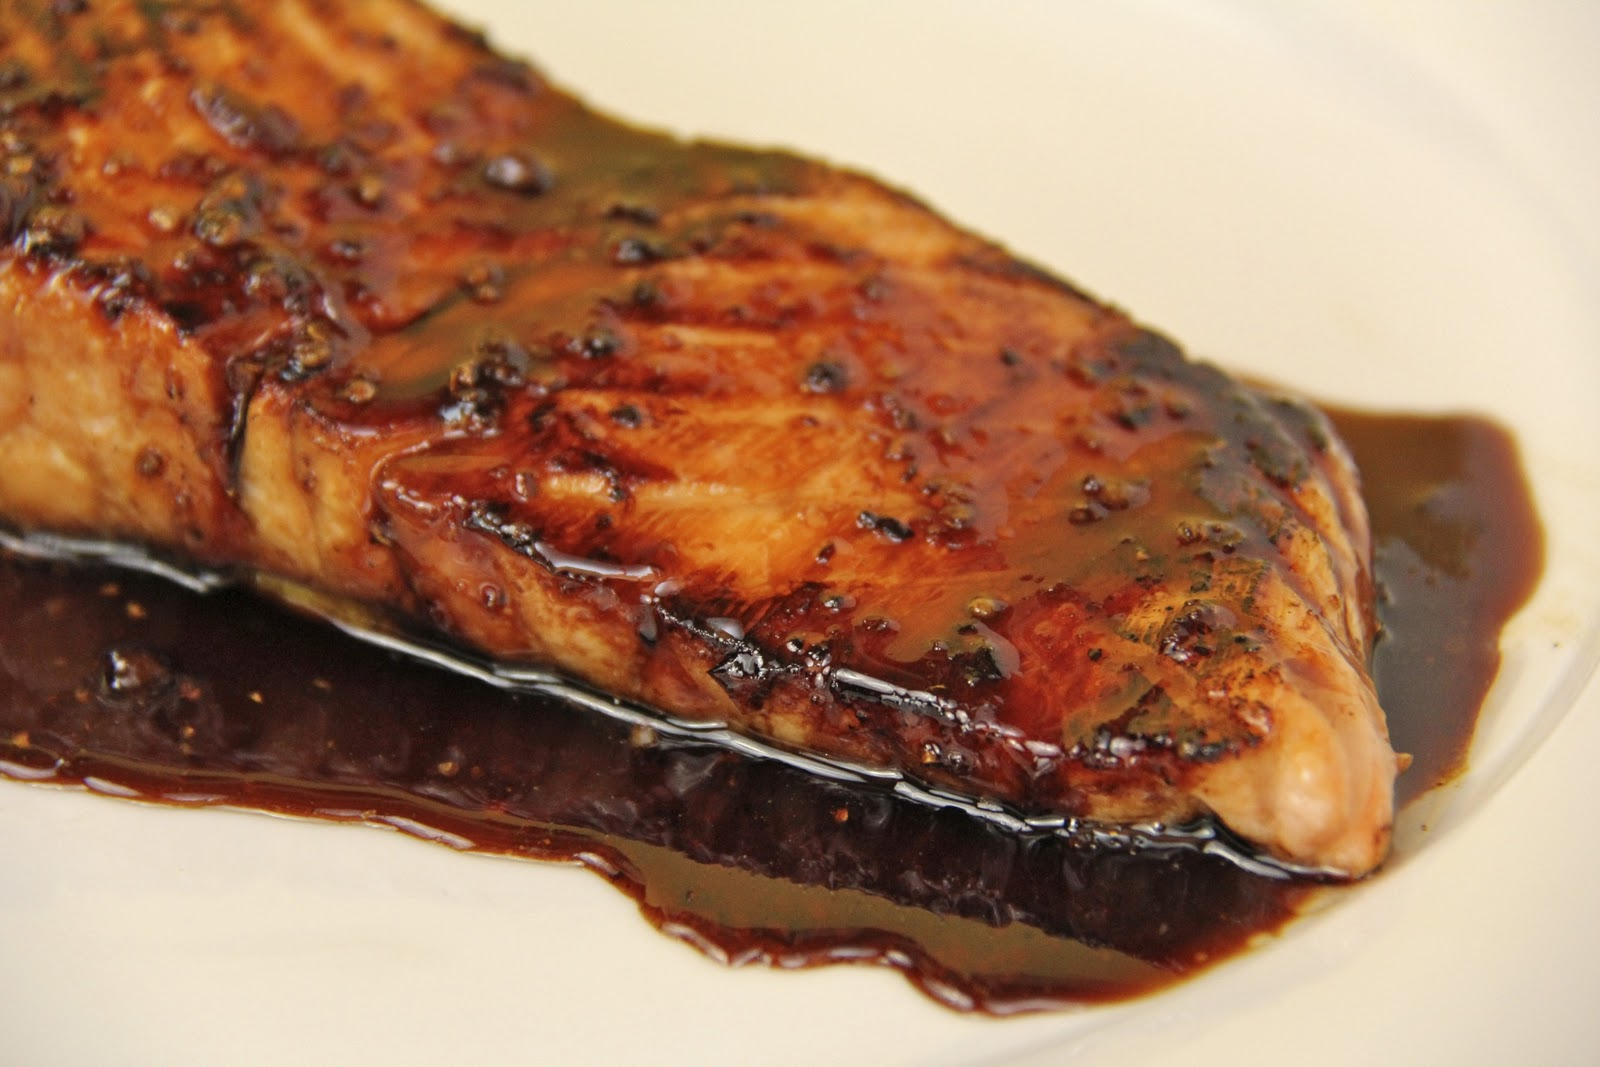 The Café Sucré Farine: Honey, Ginger & Coriander Glazed Salmon